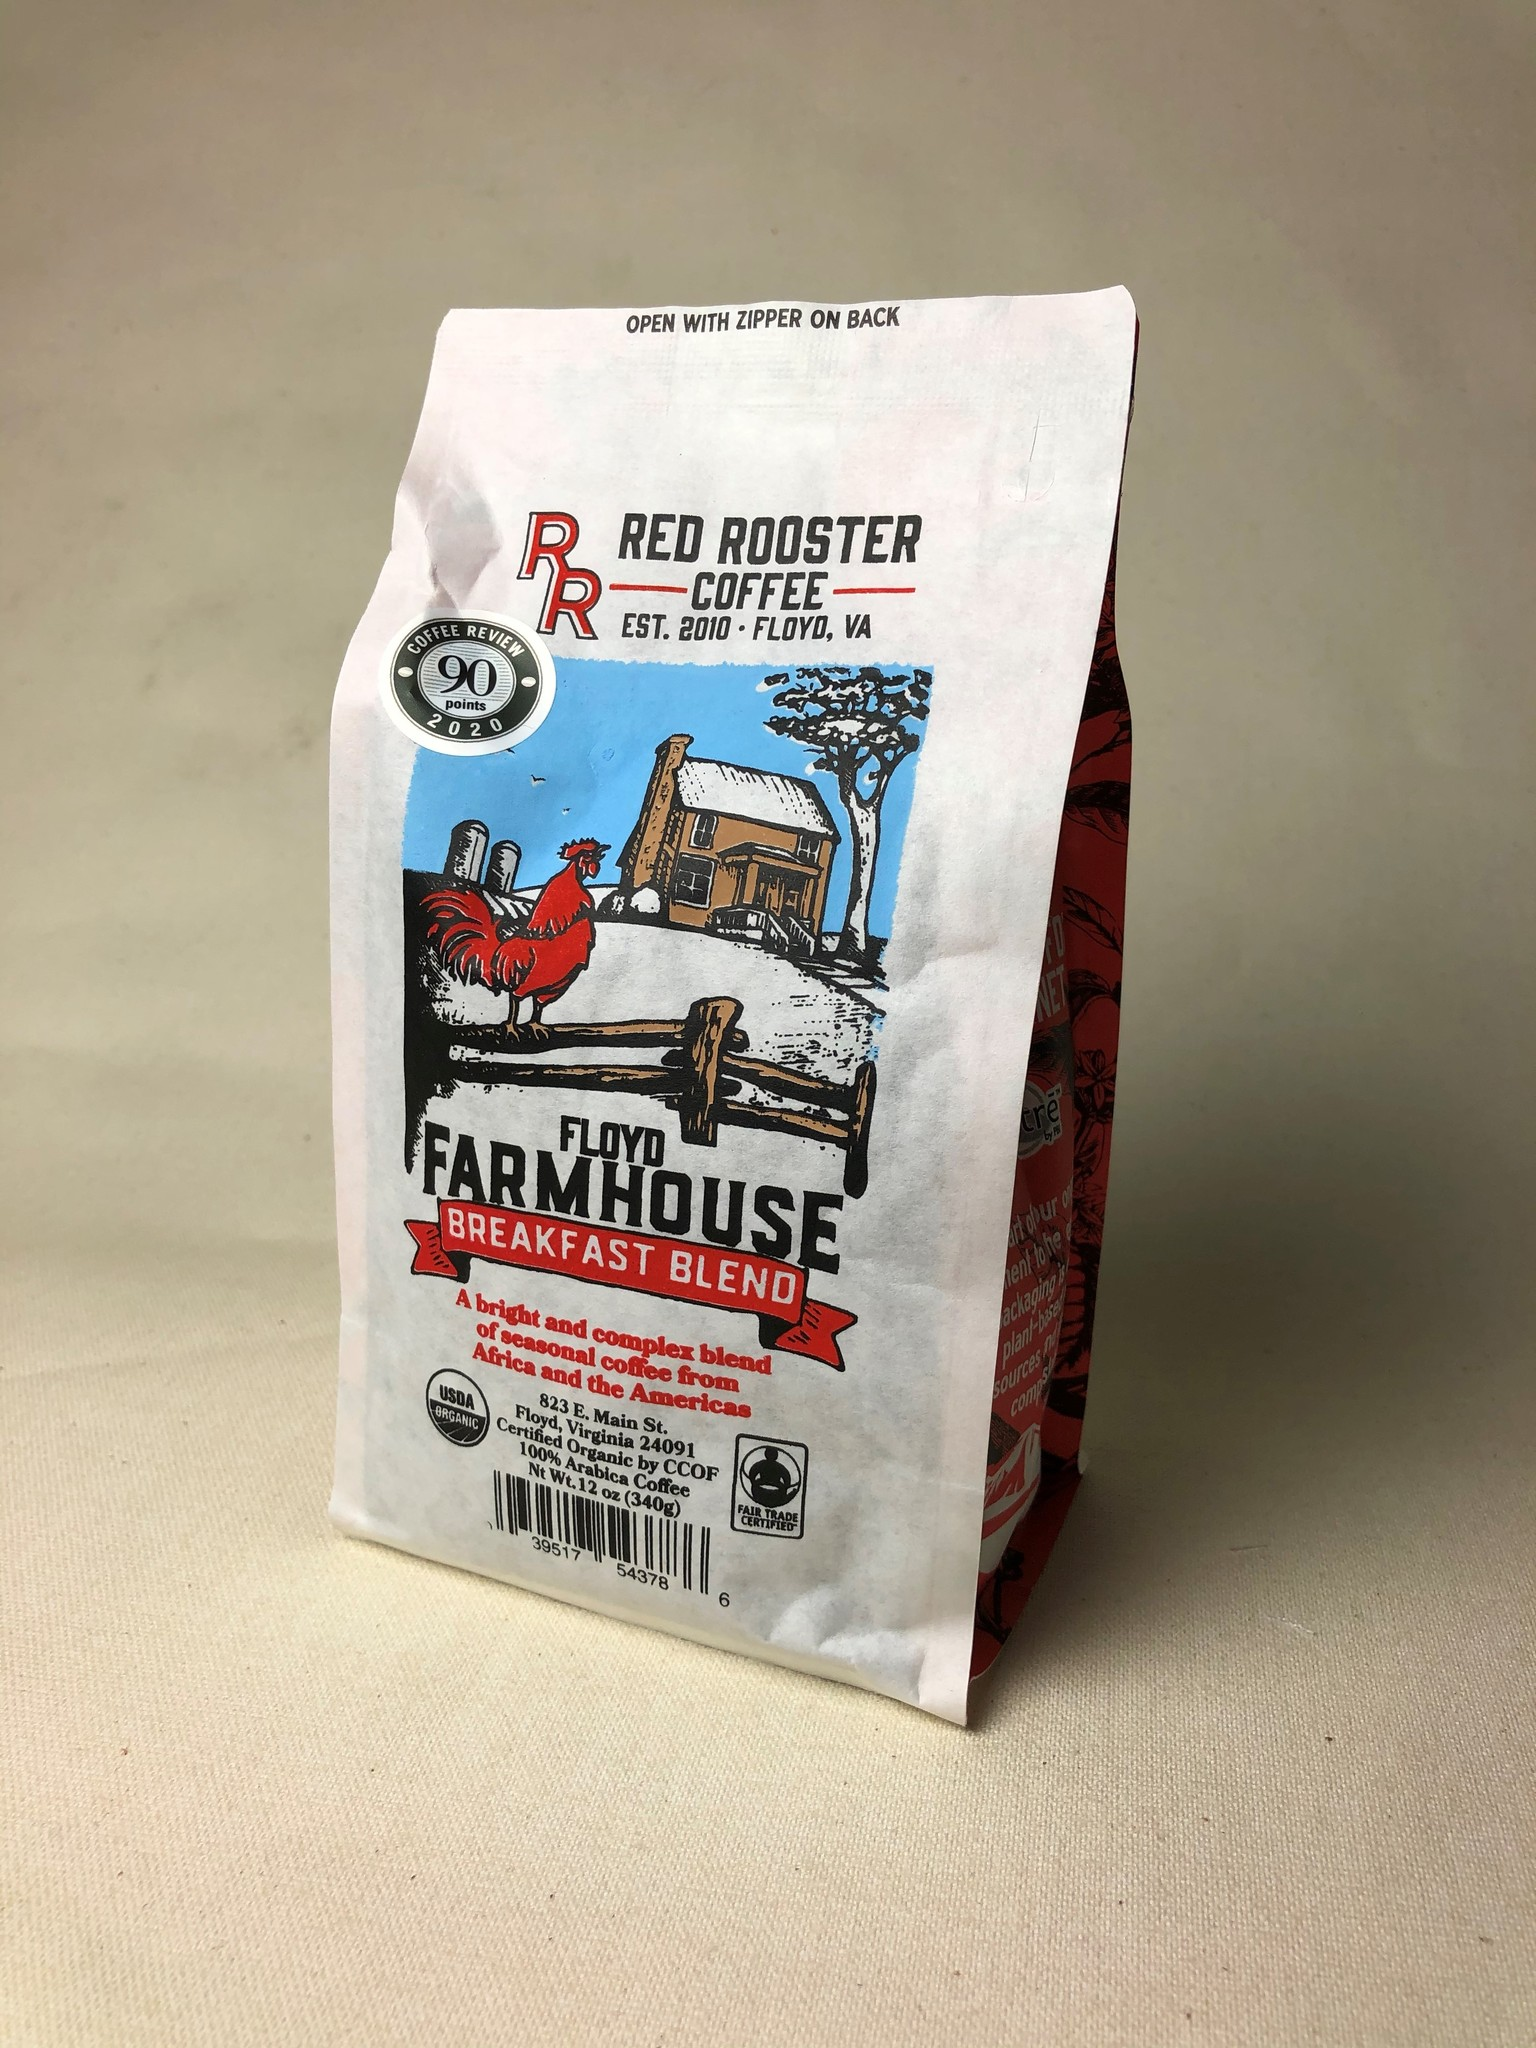 Red Rooster Coffee Farmhouse Brkfst Blend